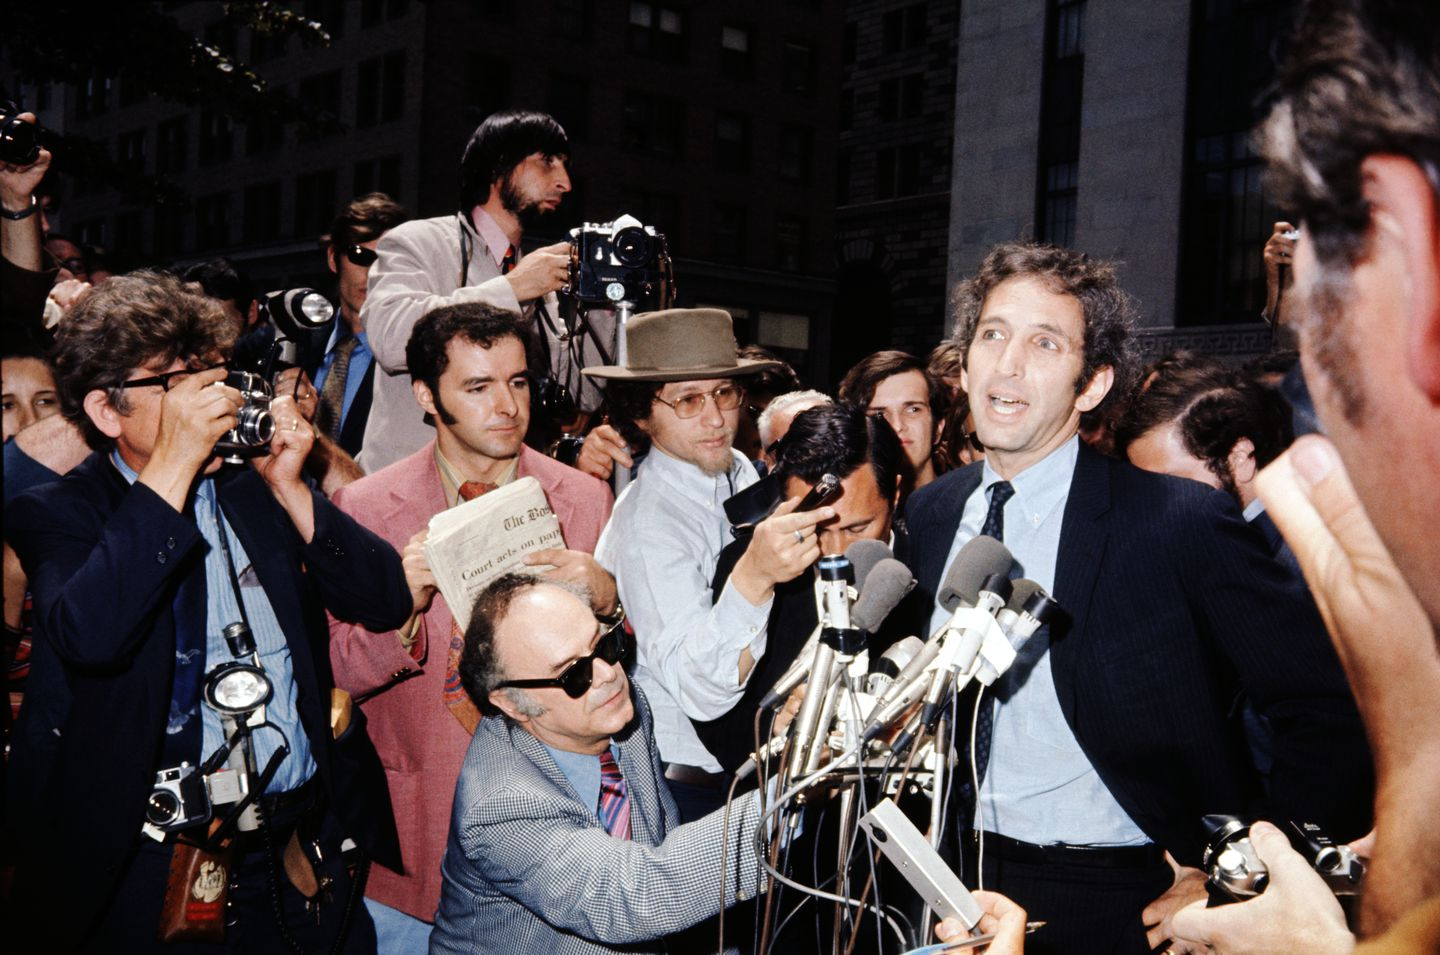 Daniel Ellsberg was surrounded by reporters at the Federal Building in Boston on June 28, 1971.